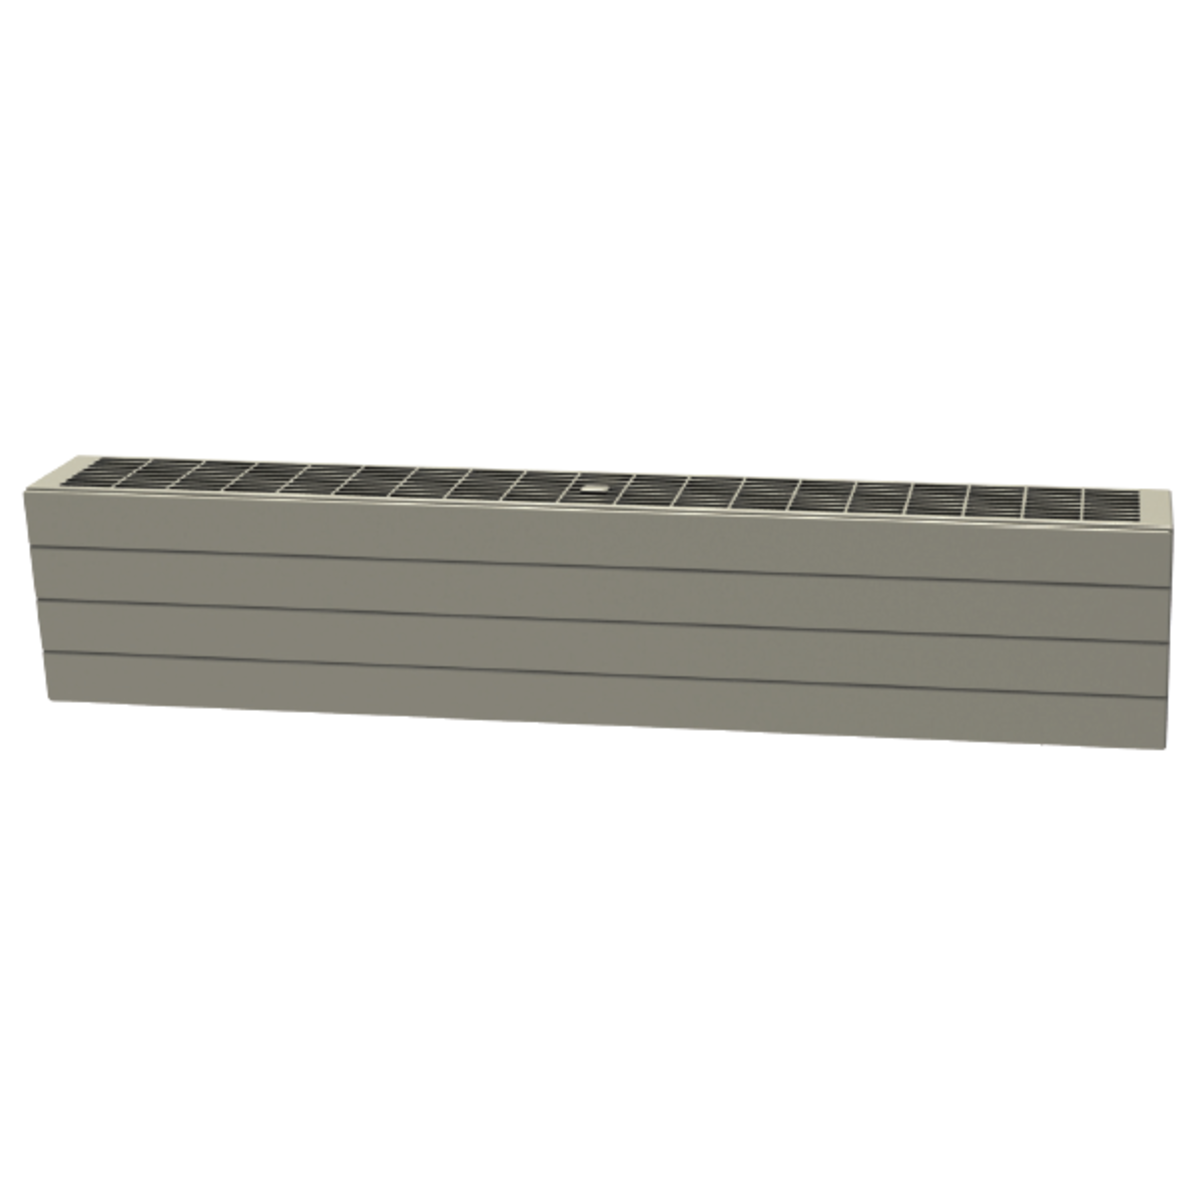 https://static.rorix.nl/image/product/overig/1200x1200/539ace47d5e05.png/stelrad-planar-style-plinth-paneelradiator-plintmodel-enkel-t33-200x1400mm-1285w-wit-ral9016-stelrad--8223338.png